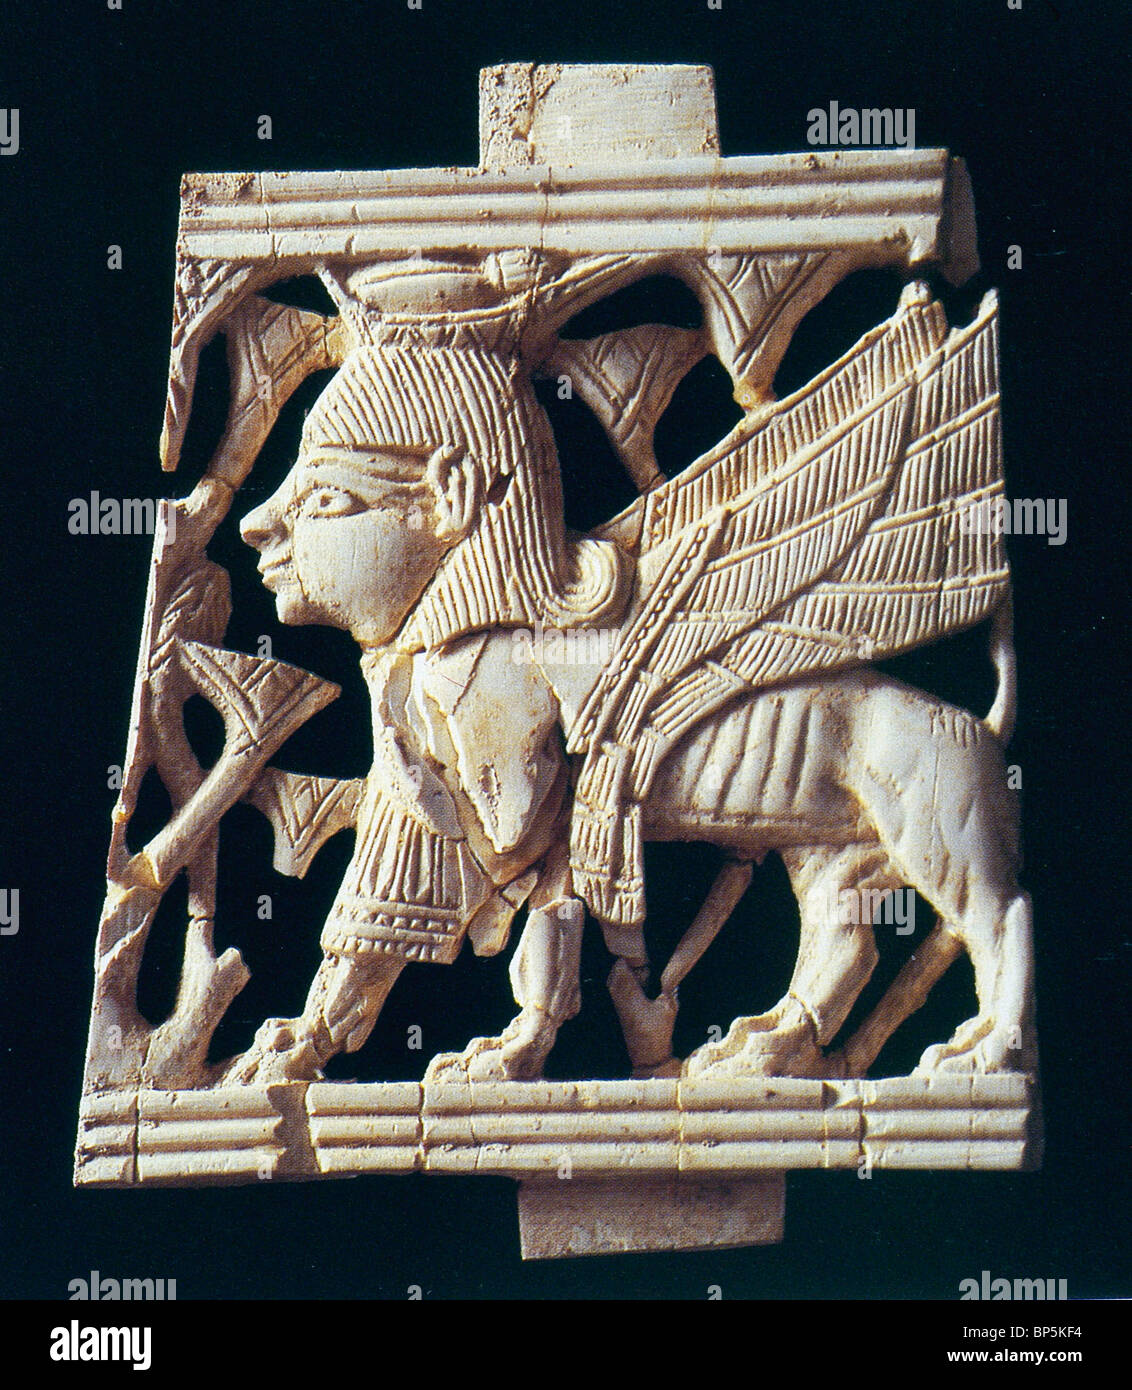 IVORY FROM SAMARIA DATING FROM 9-8TH. C. BC. THE OBJECT WAS FOUND IN KING AHAB'S 'IVORY PALACE' (I KINGS - Stock Image